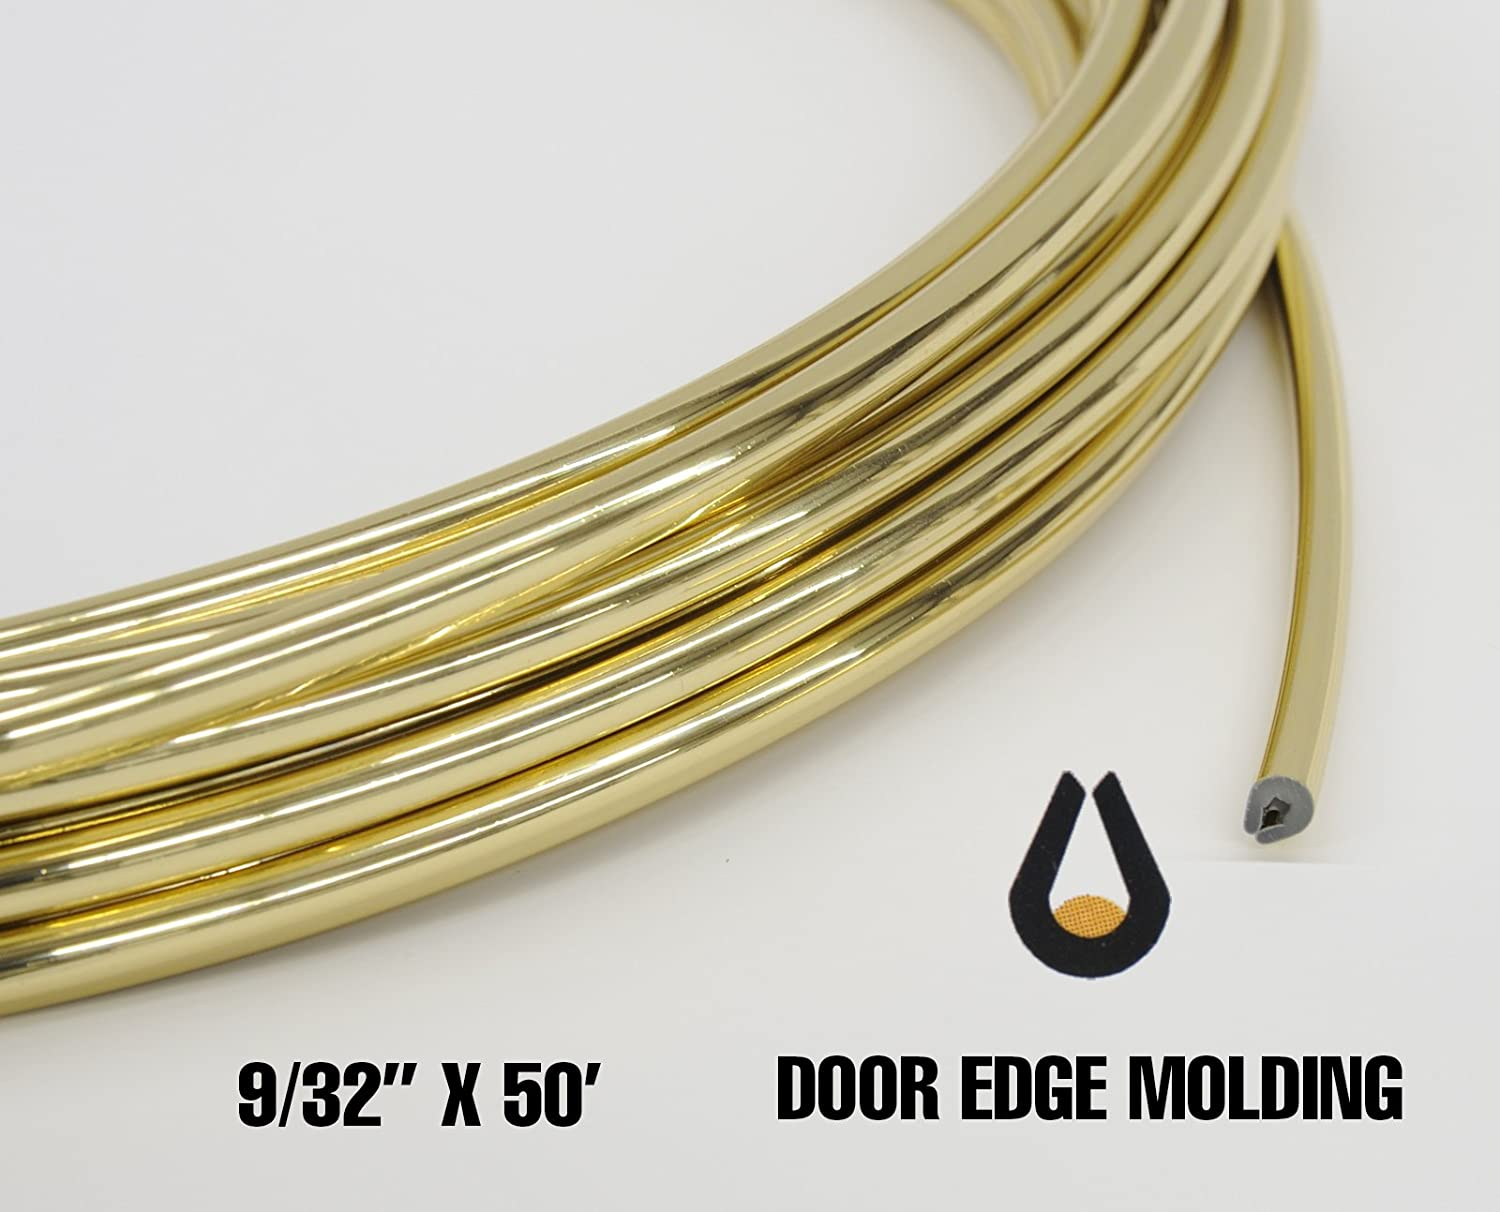 U shaped Automotive Door Edge Guard 9/32 x 50' (Gold) Trim-Gard 406-50